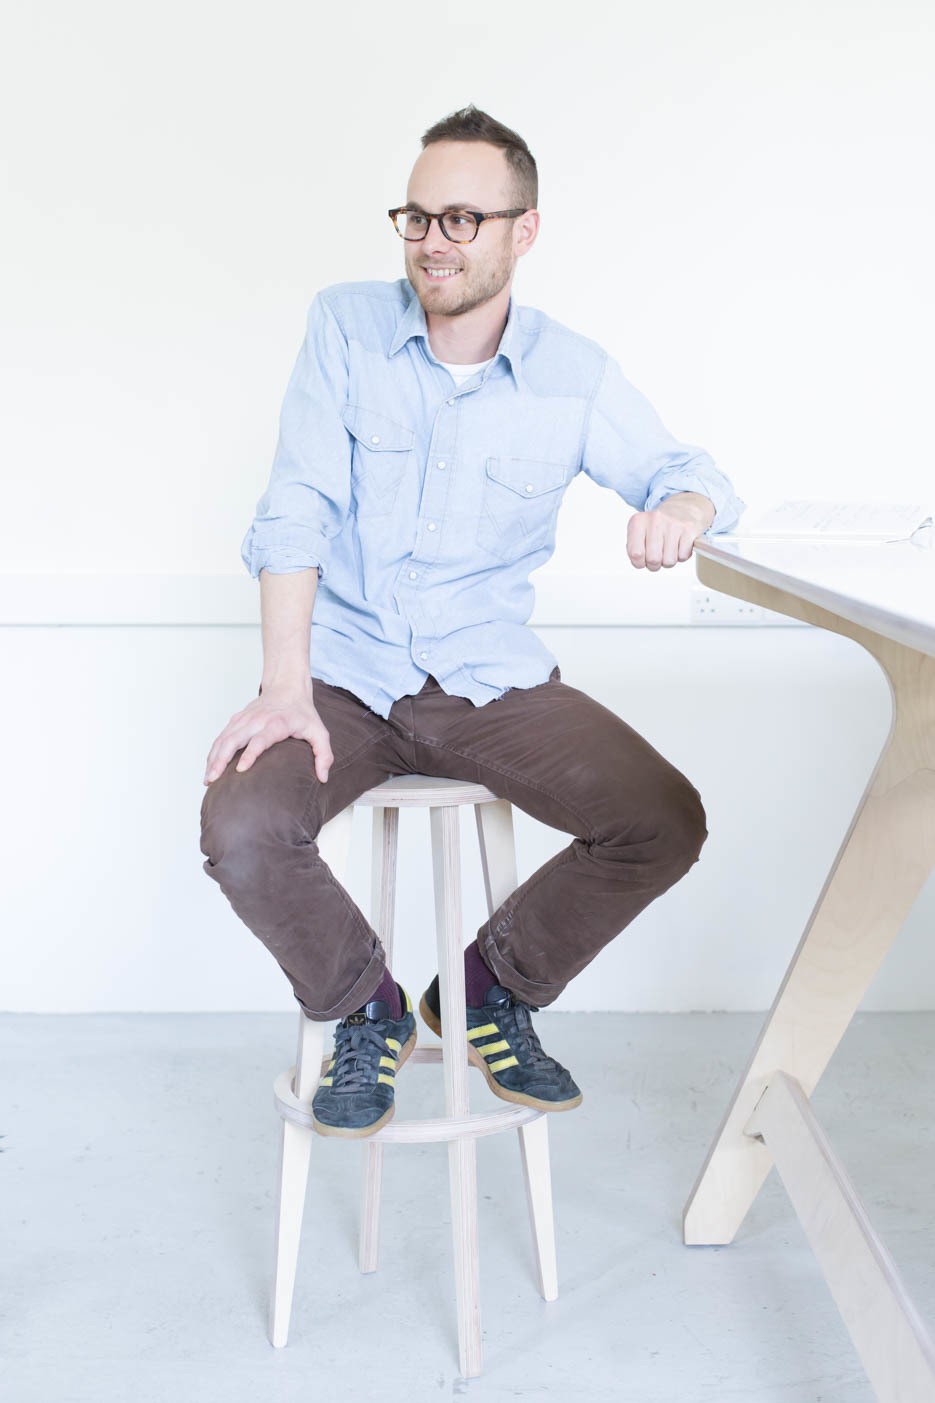 Ben designer of Nimble Stool